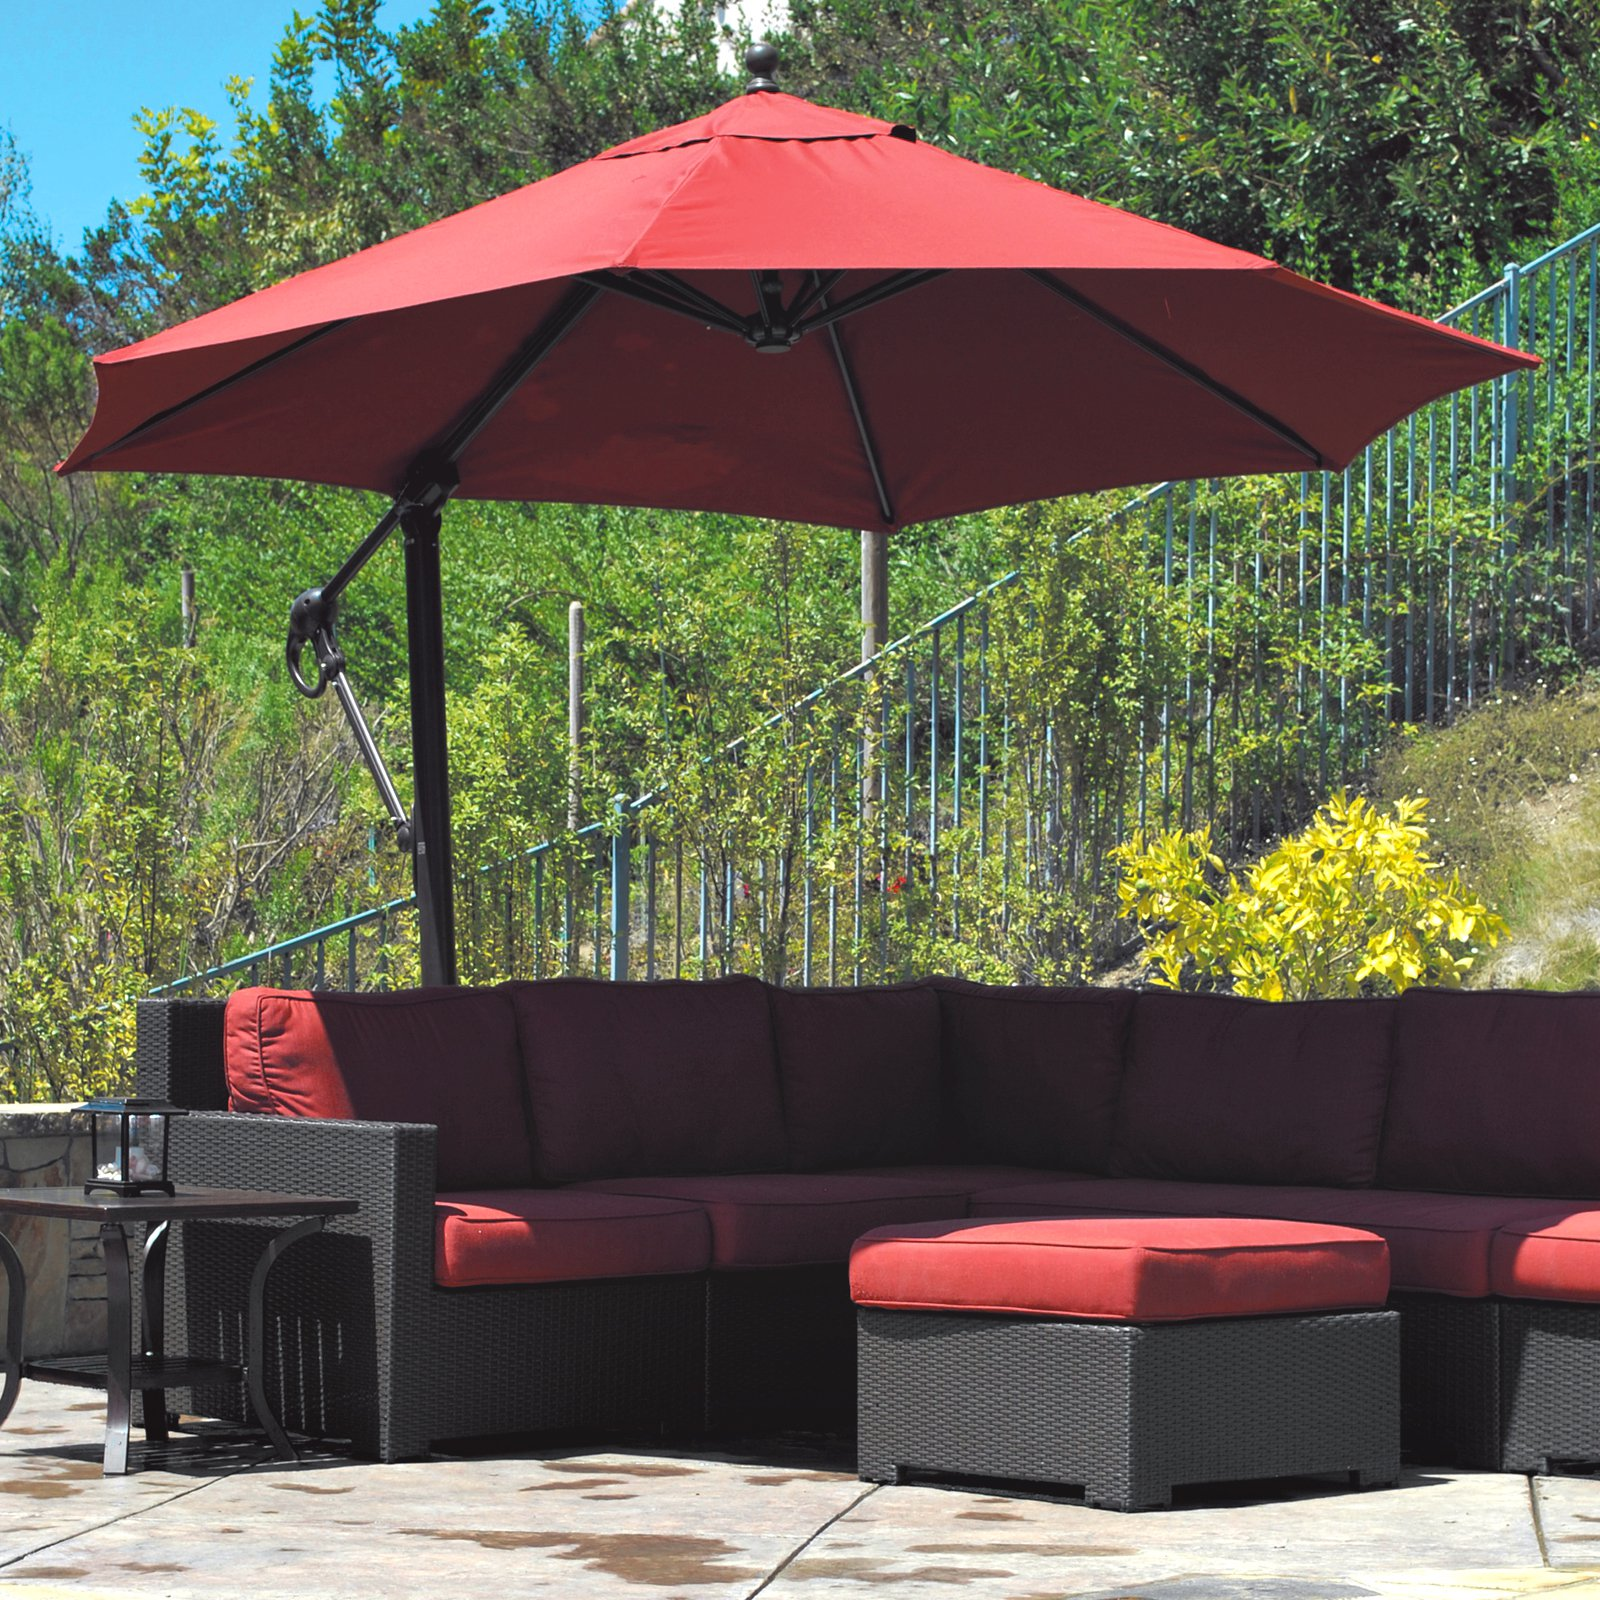 Stunning Galtech Sunbrella Easy Tilt 11-ft. Offset Umbrella with Wheeled Base - Patio offset patio umbrella